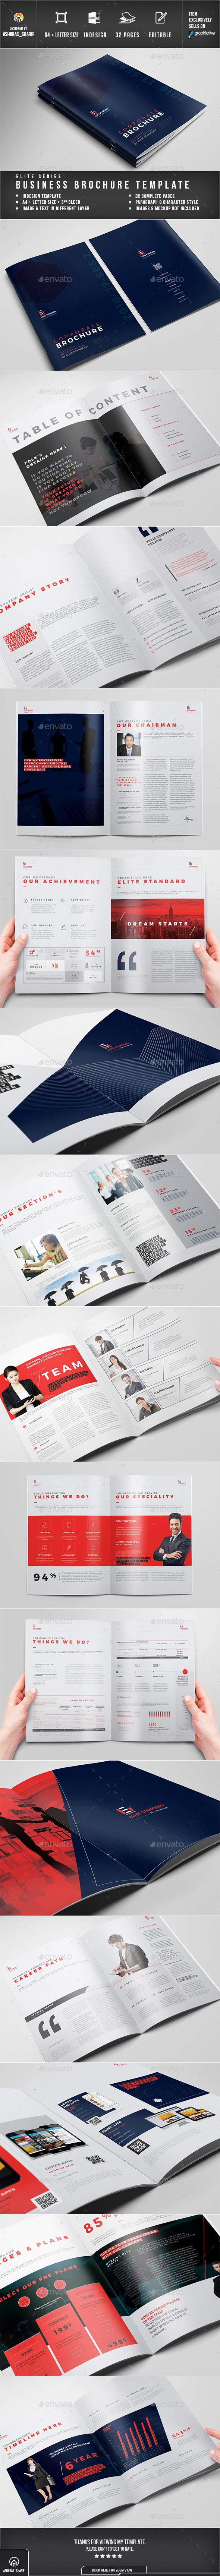 Brochure - Brochures Print Templates Easy Customization and Editable A4 and US Letter Size with 3mm bleed 32 pages Paragraph Style, Character style included Images, text, Objects are Different Layers Design in 300 DPI Resolution Indesign files Auto numbering Option working file adobe cc Adobe Indesign CC,CS6,CS5,CS4 or latter software version supported